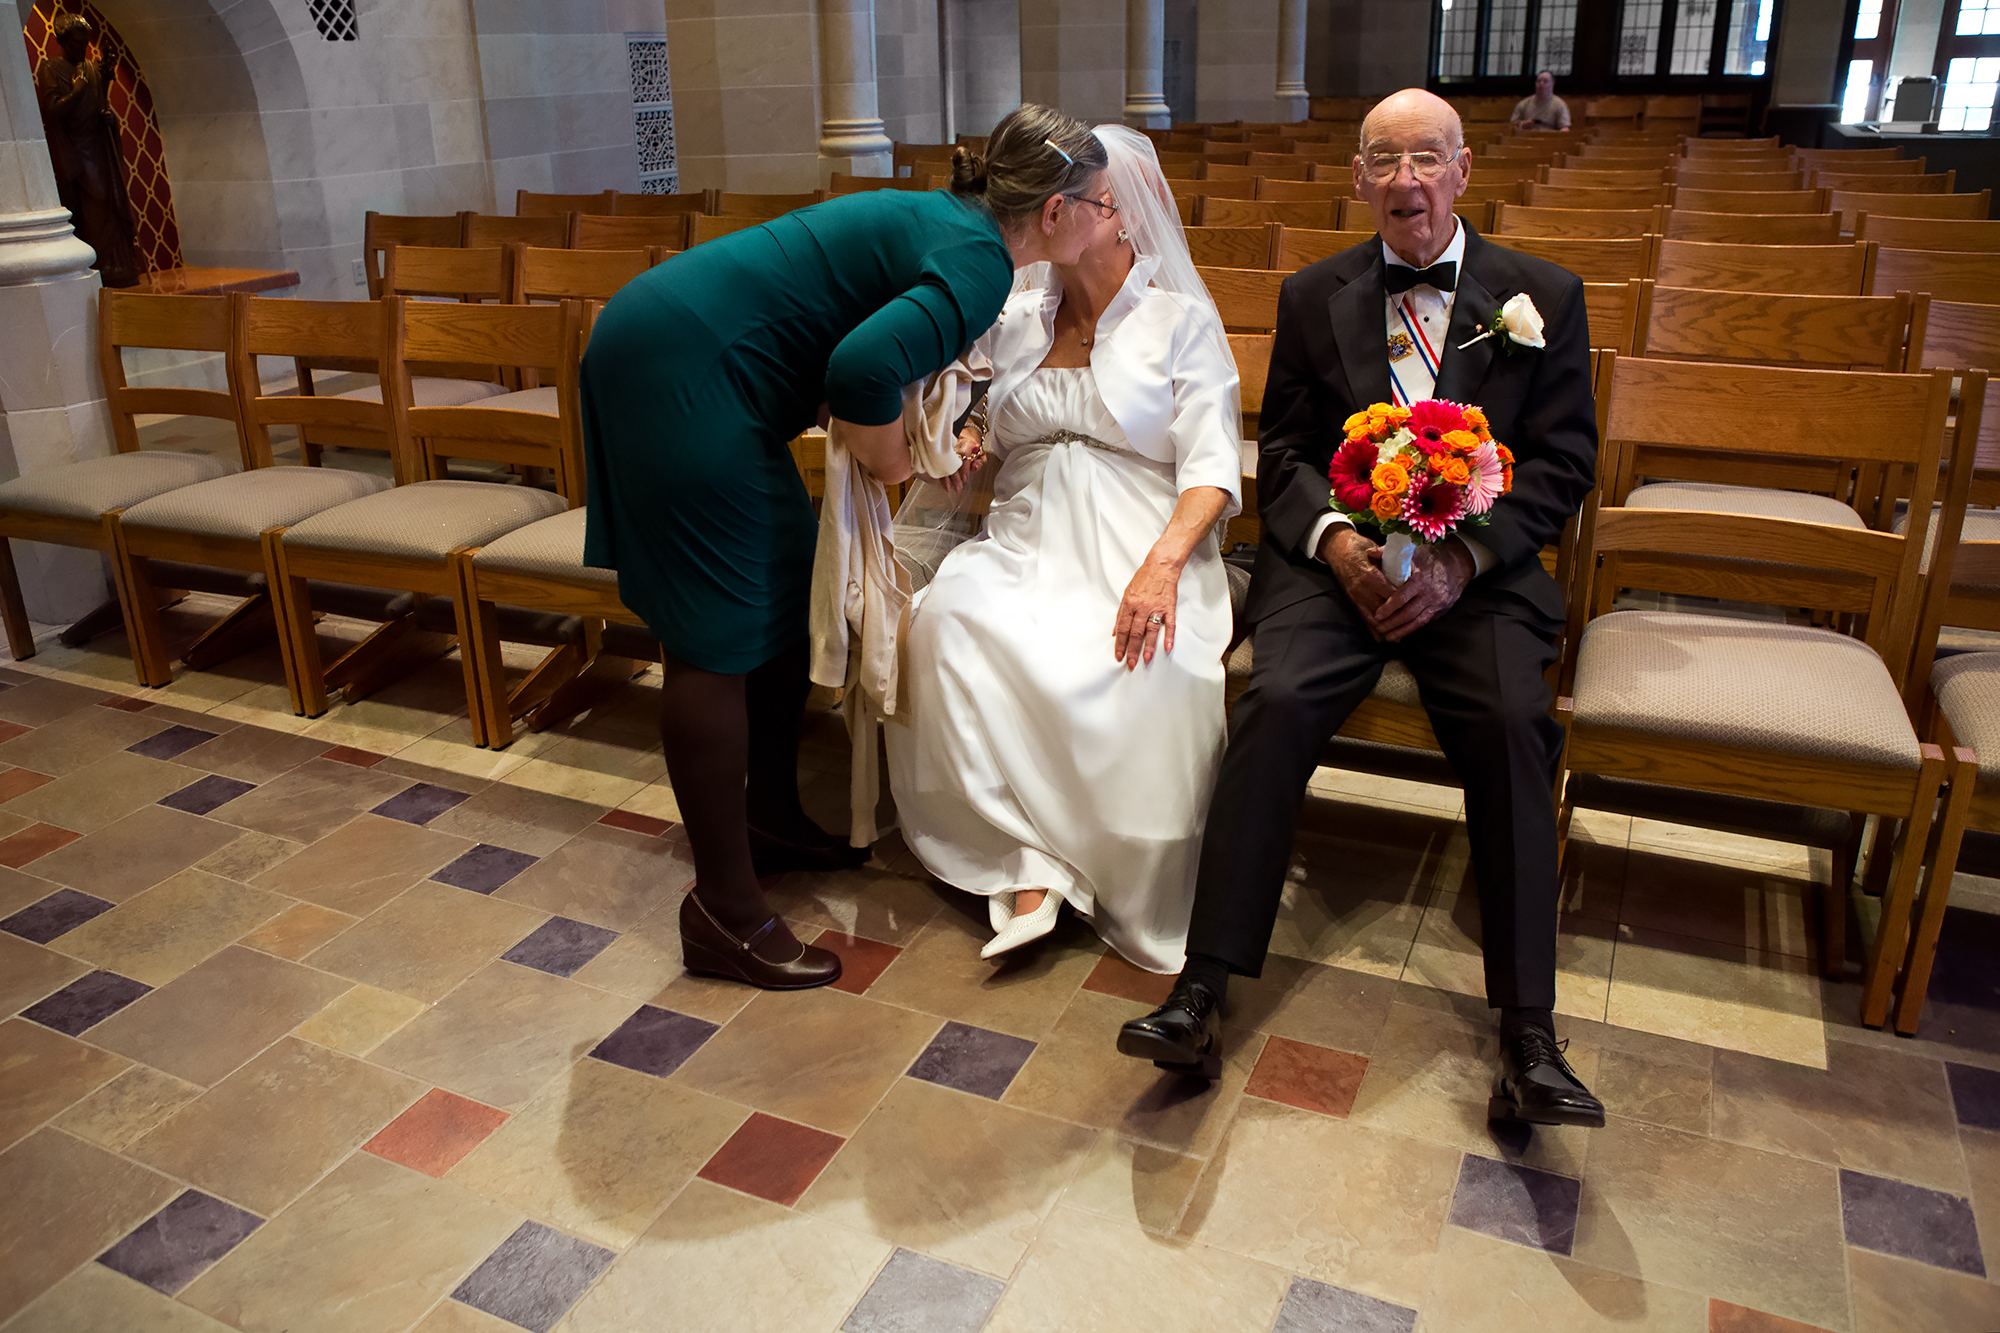 Frank holds Joyce's bouquet as her sister-in-law, Ellie Kleber, congratulates her after the wedding. After a busy morning, Frank admits he is beginning to feel worn out.